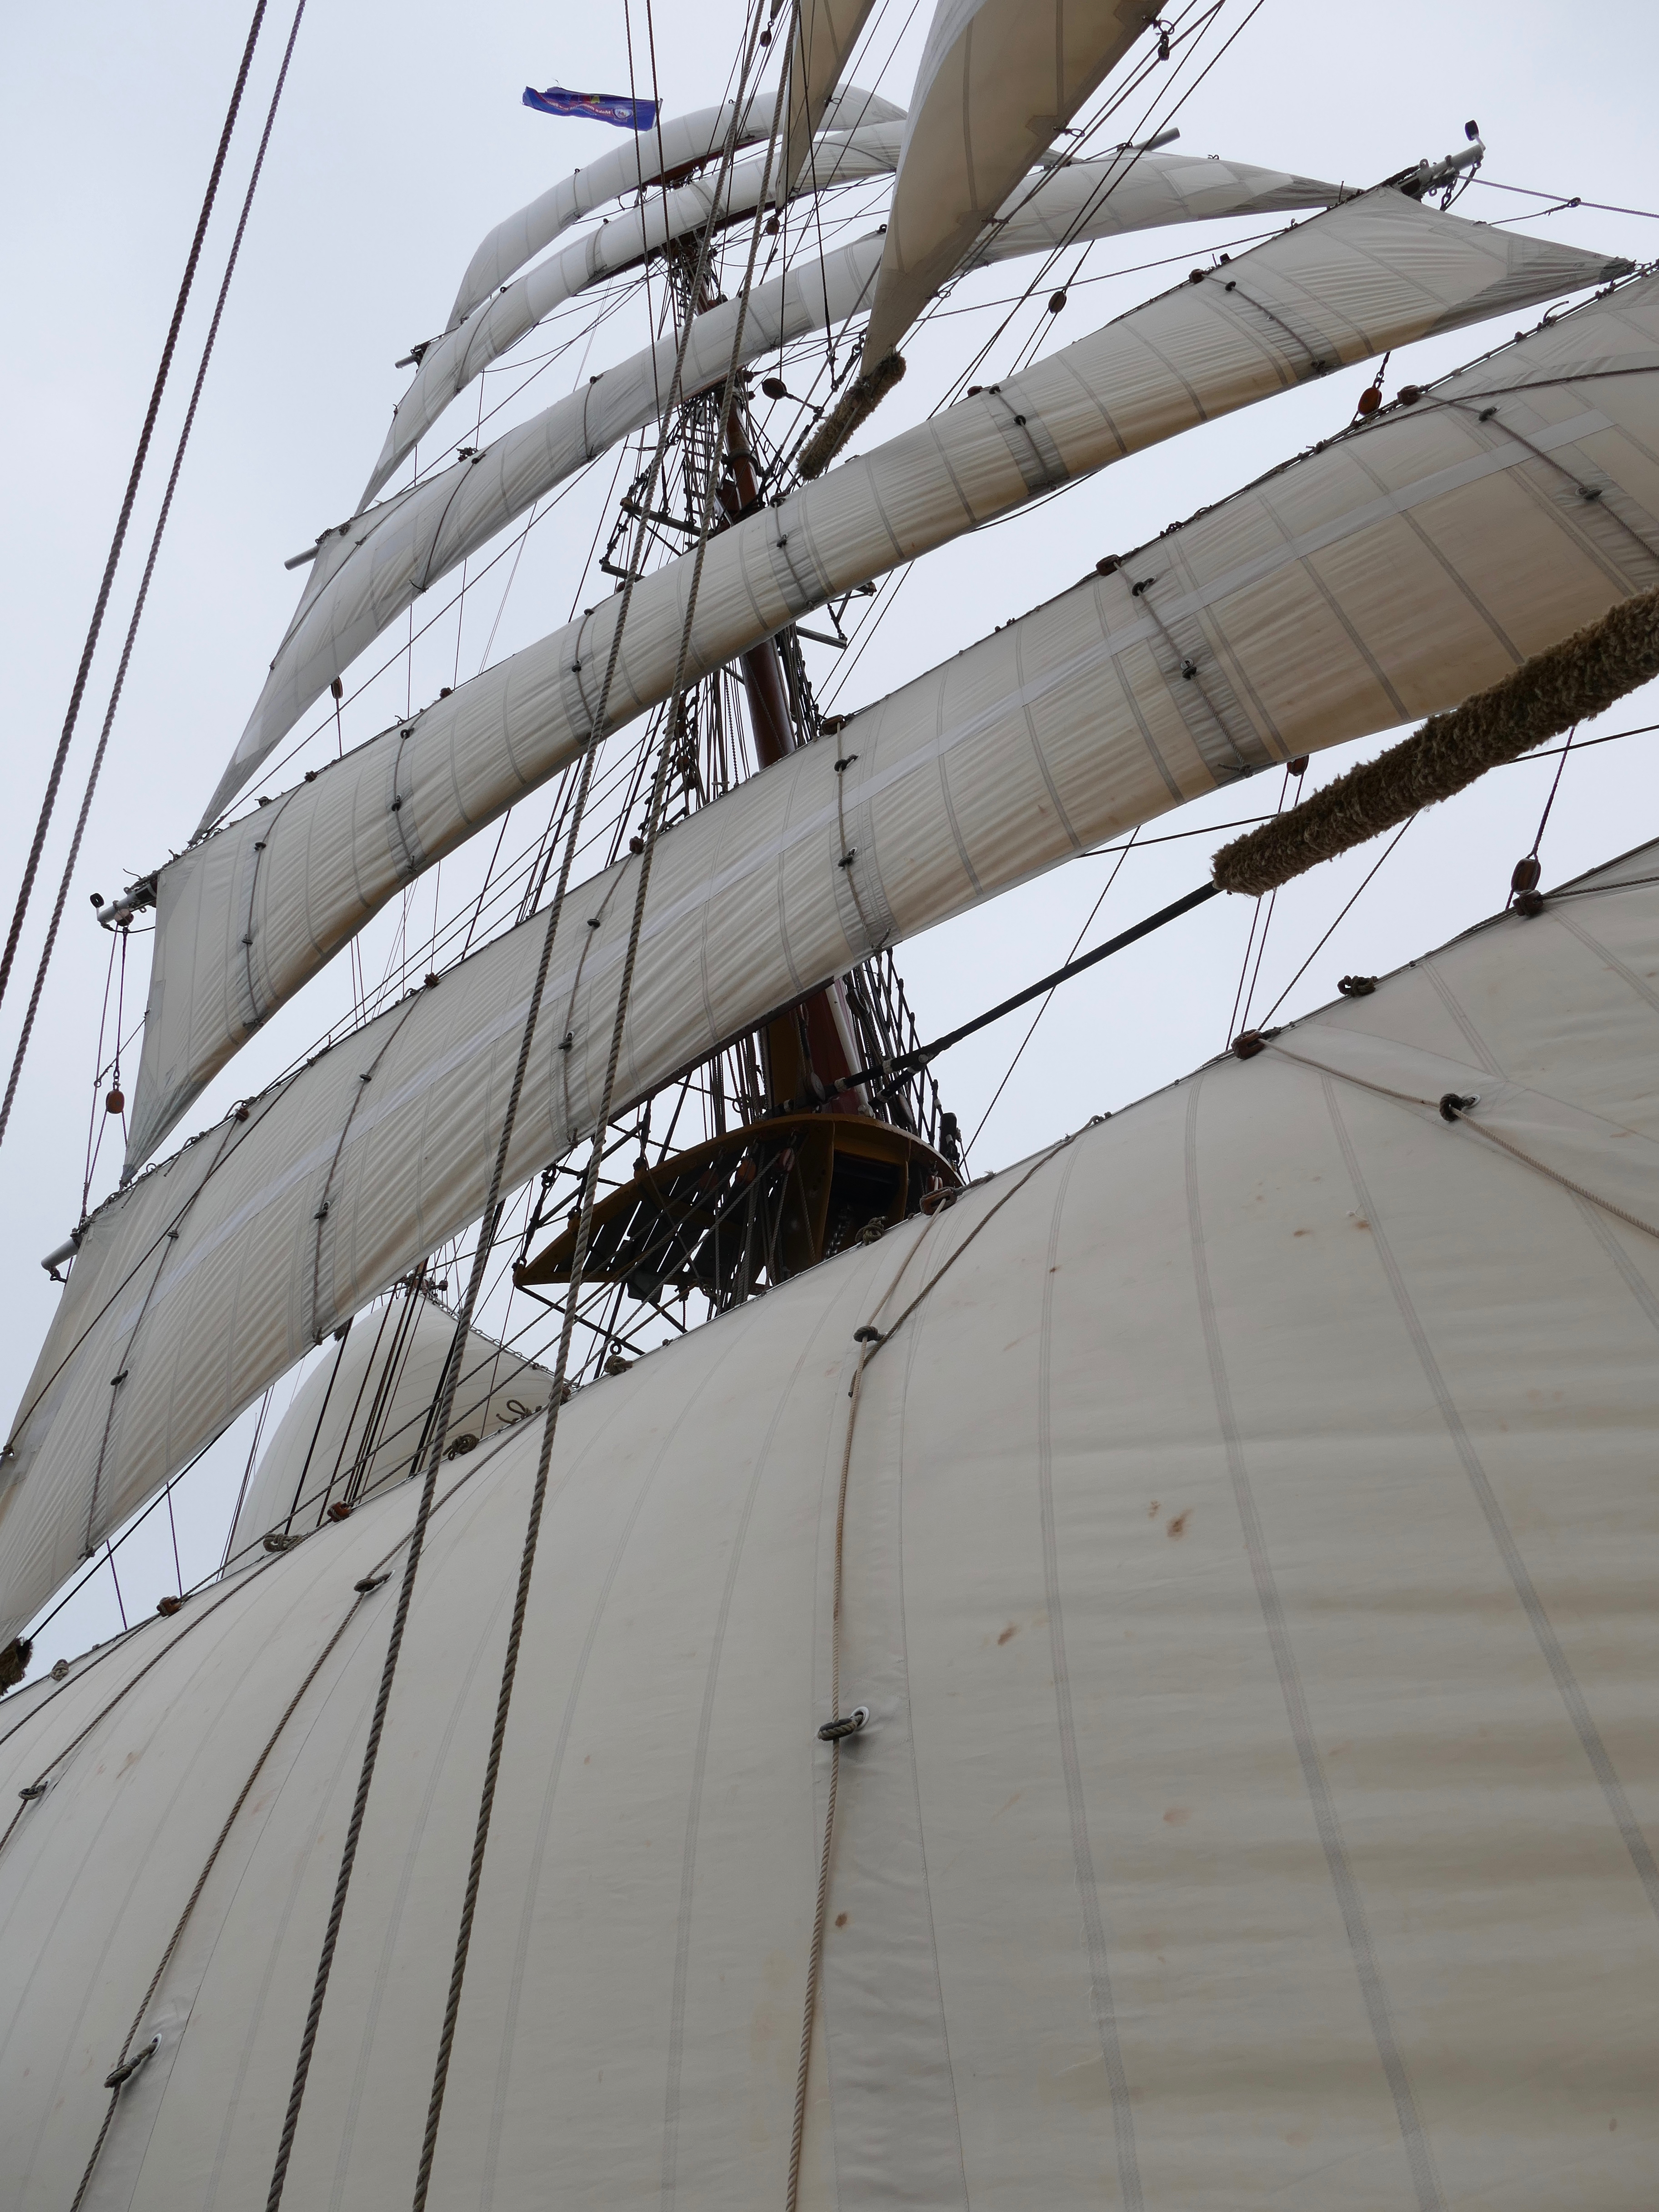 Six sails pulling hard on the foresail in the South Atlantic